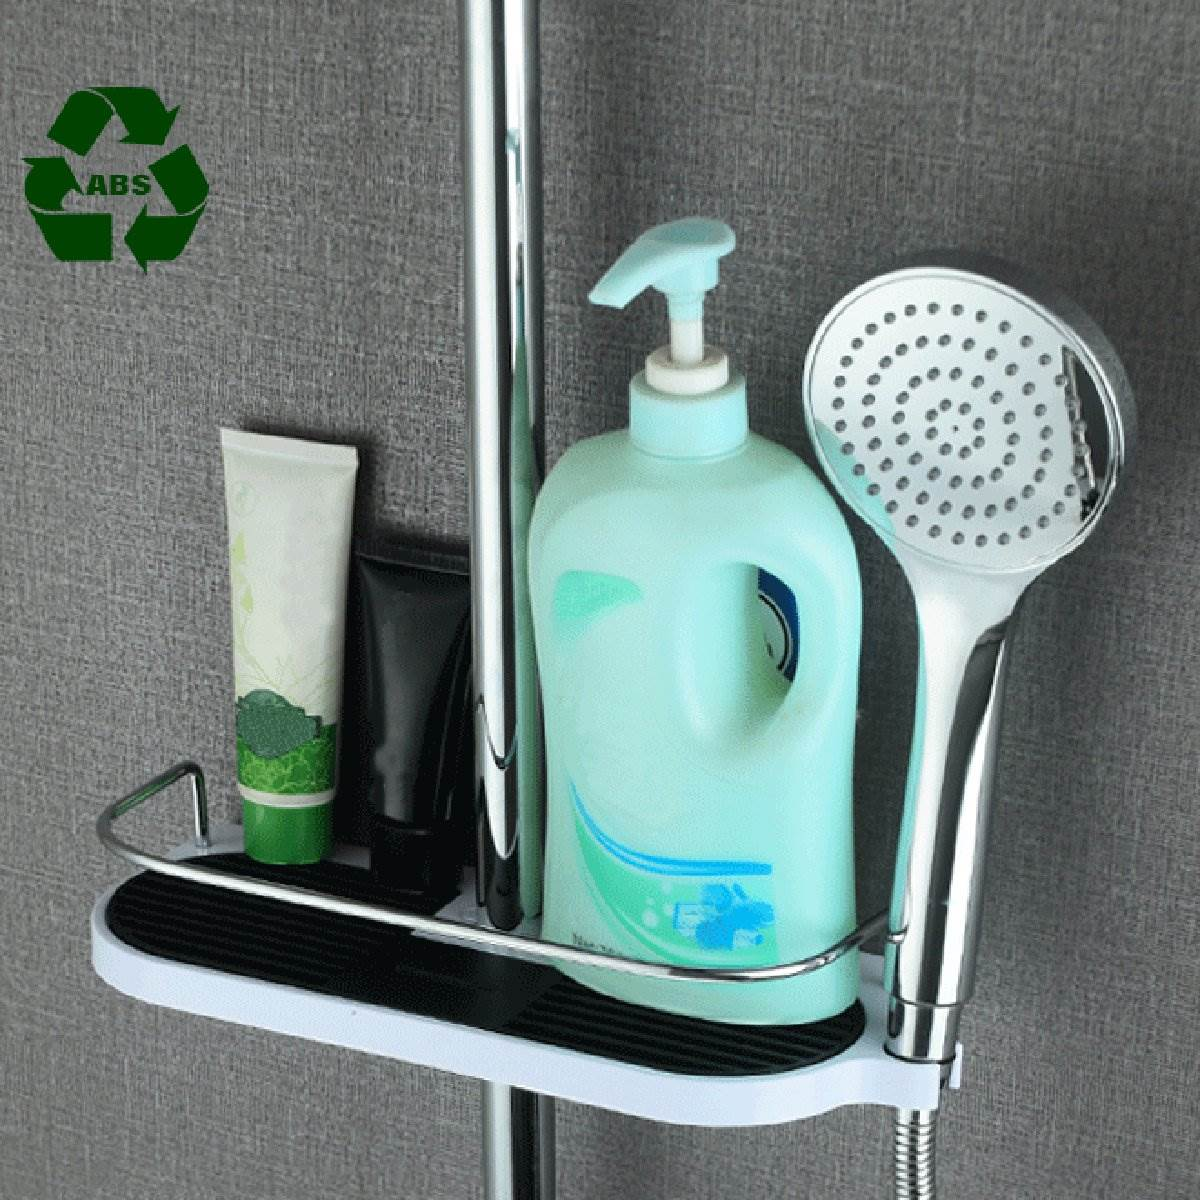 ABS Bathroom Shampoo holder for Show Shelf Shower Storage Bath Caddy ...